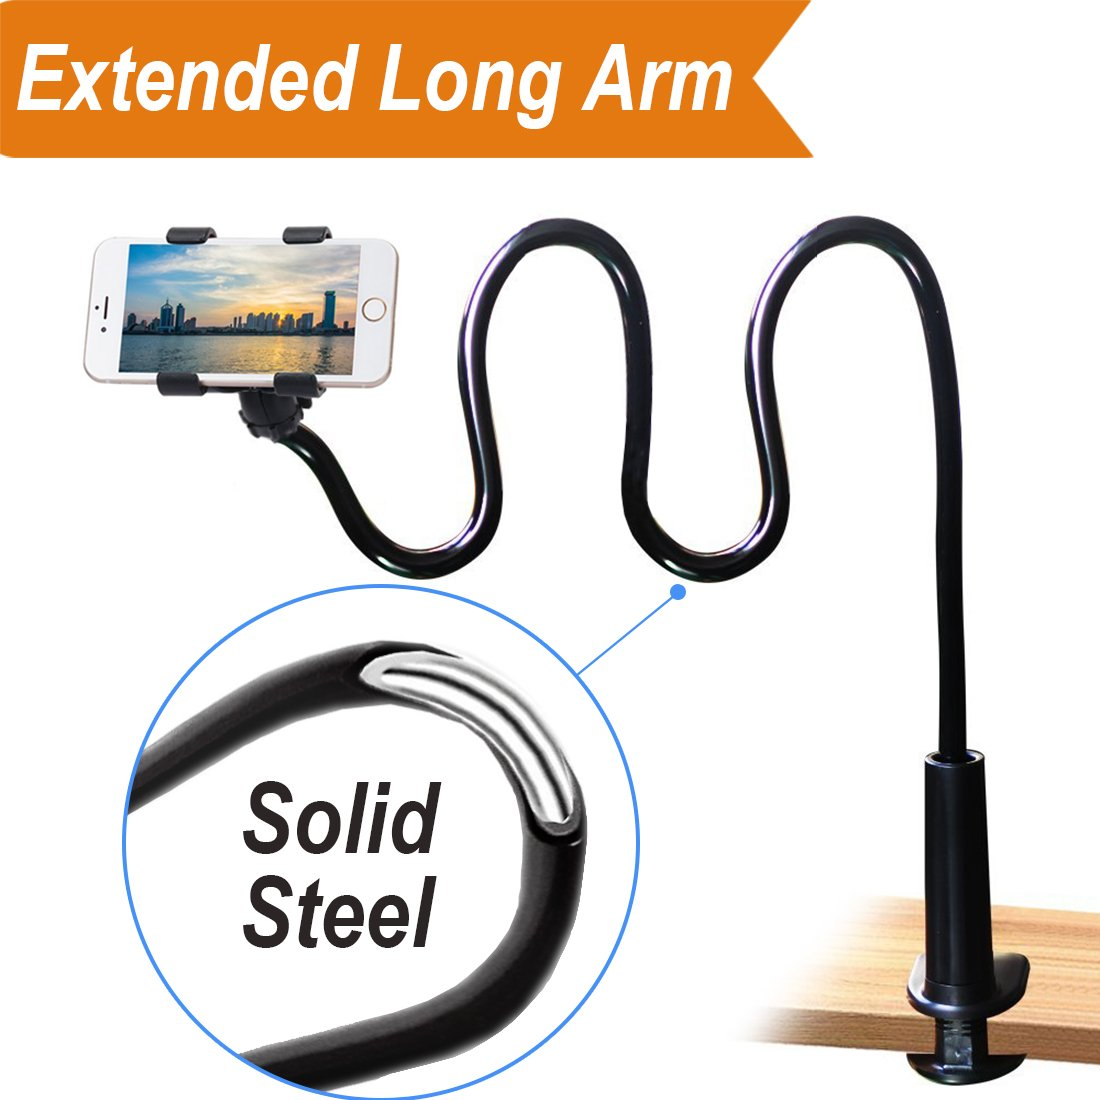 Cell Phone Clip on Stand Holder - with Grip Flexible Long Arm Gooseneck Bracket Mount Clamp for iPhone X/8/7/6/6s Plus Samsung S8/S7, Used for Bed, Desktop